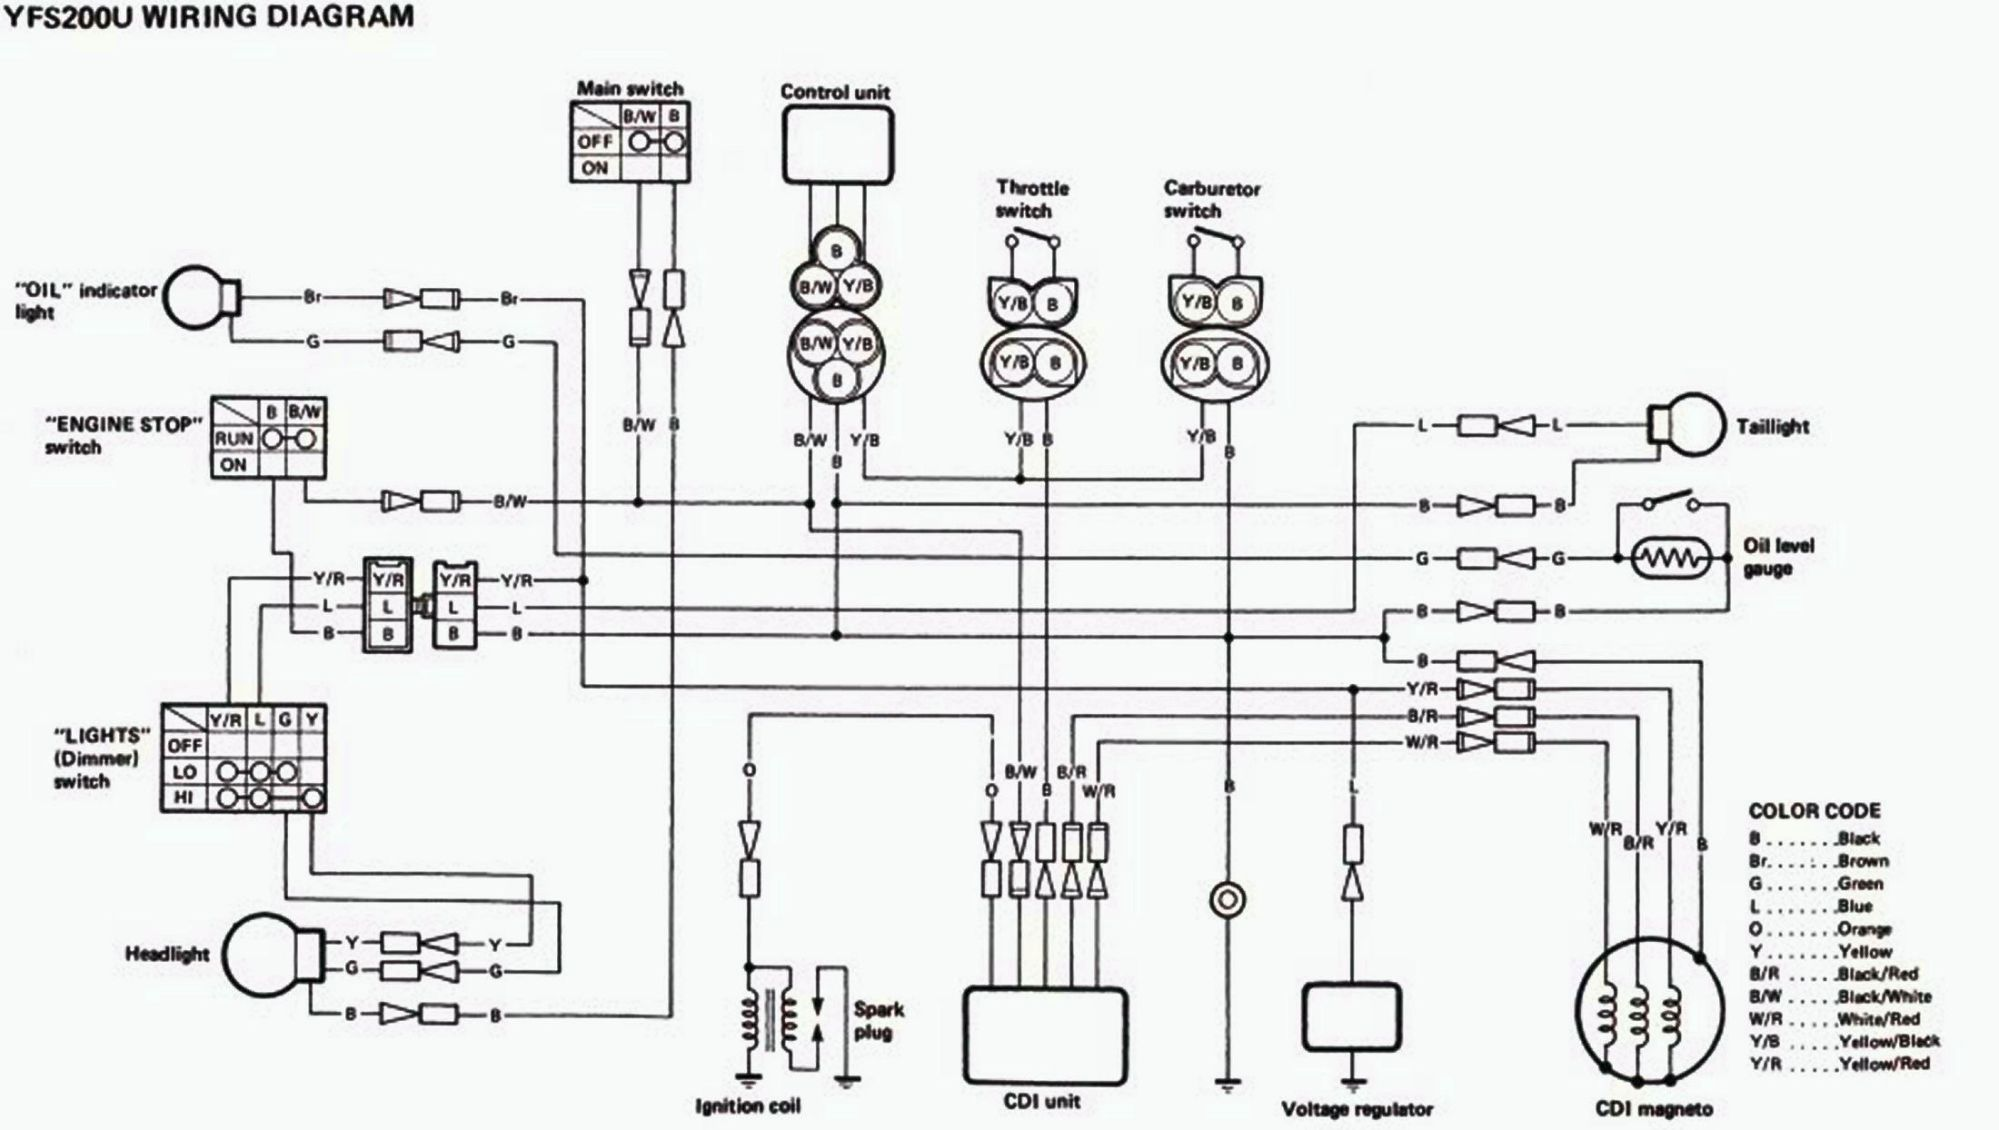 hight resolution of stock wiring diagrams blasterforum com 1997 polaris sportsman wiring diagram 1997 yamaha blaster wiring diagram